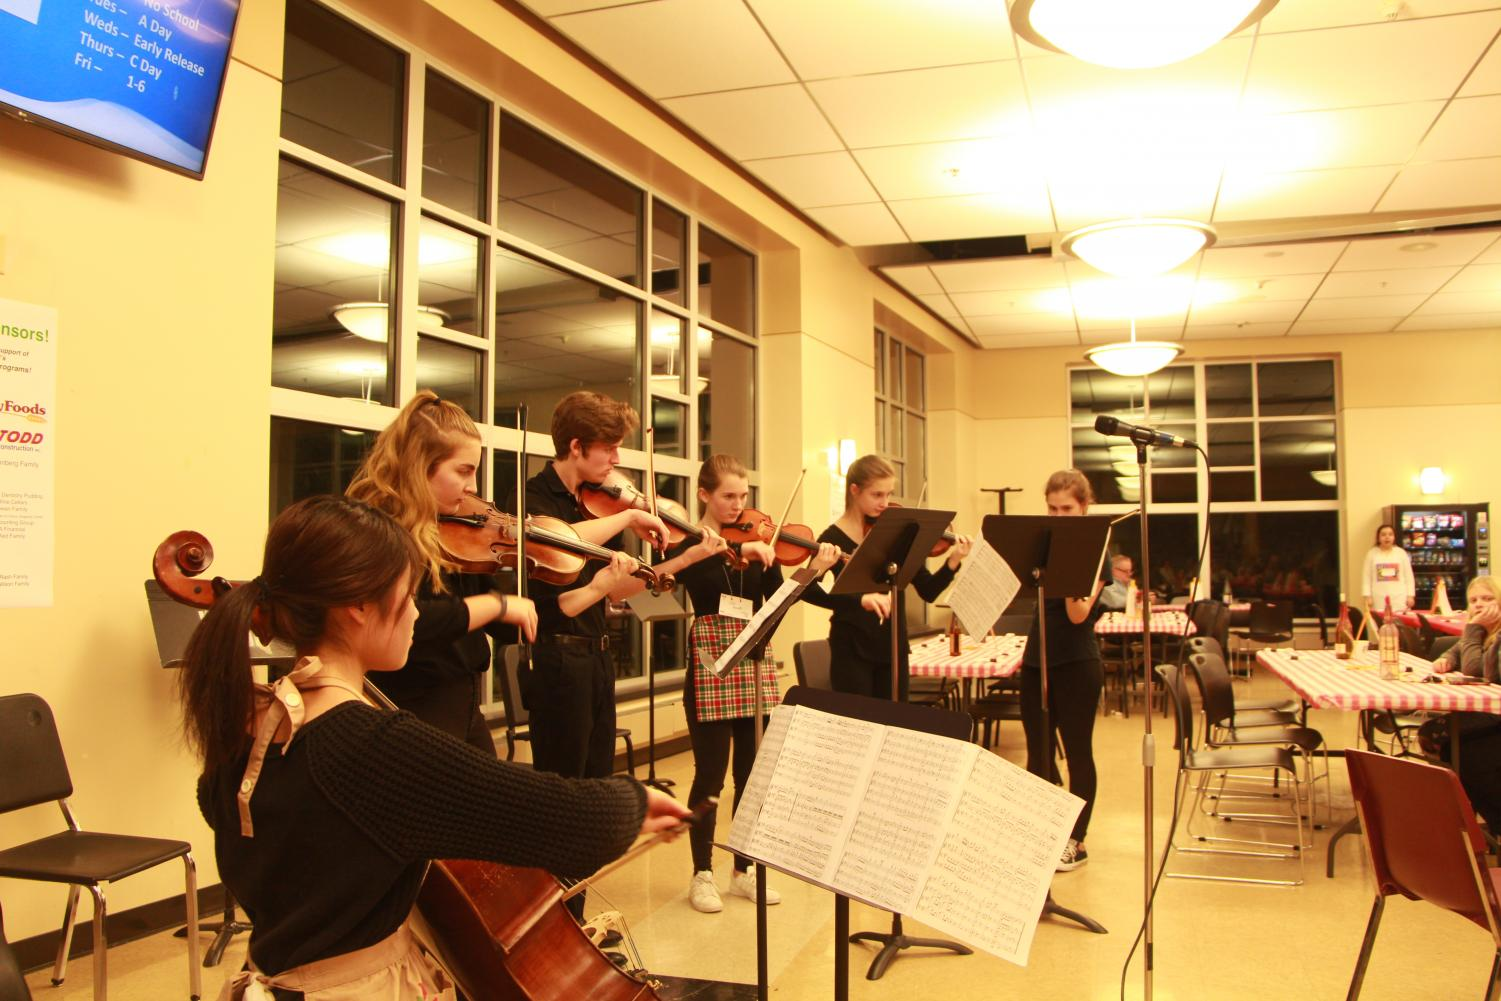 Orchestra students showed their skills as the sound of strings echoed throughout the commons.